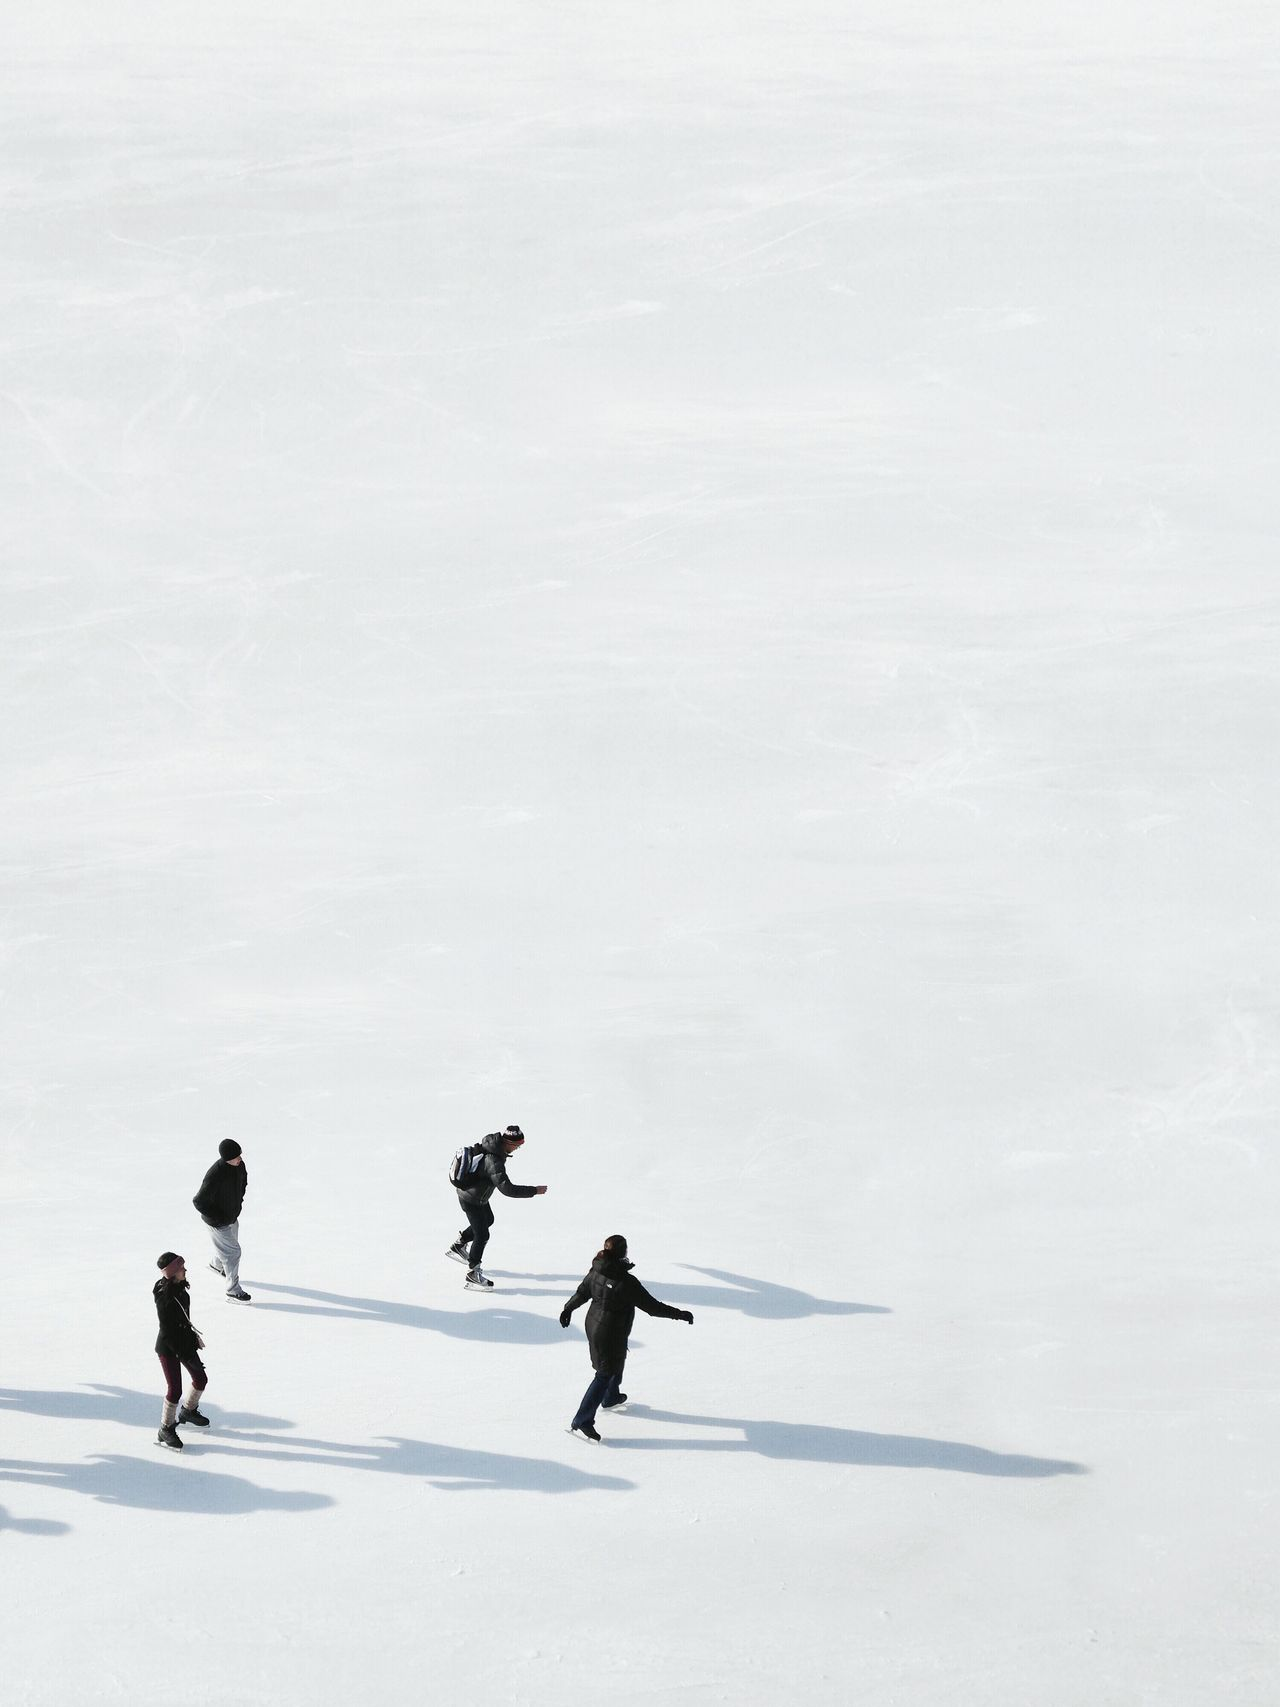 Winter snow cold temperature real people leisure activity Nature full length lifestyles Frozen outdoors men day Winter sport Ice-skating ice skate Ice rink ice hockey stick beauty in Nature